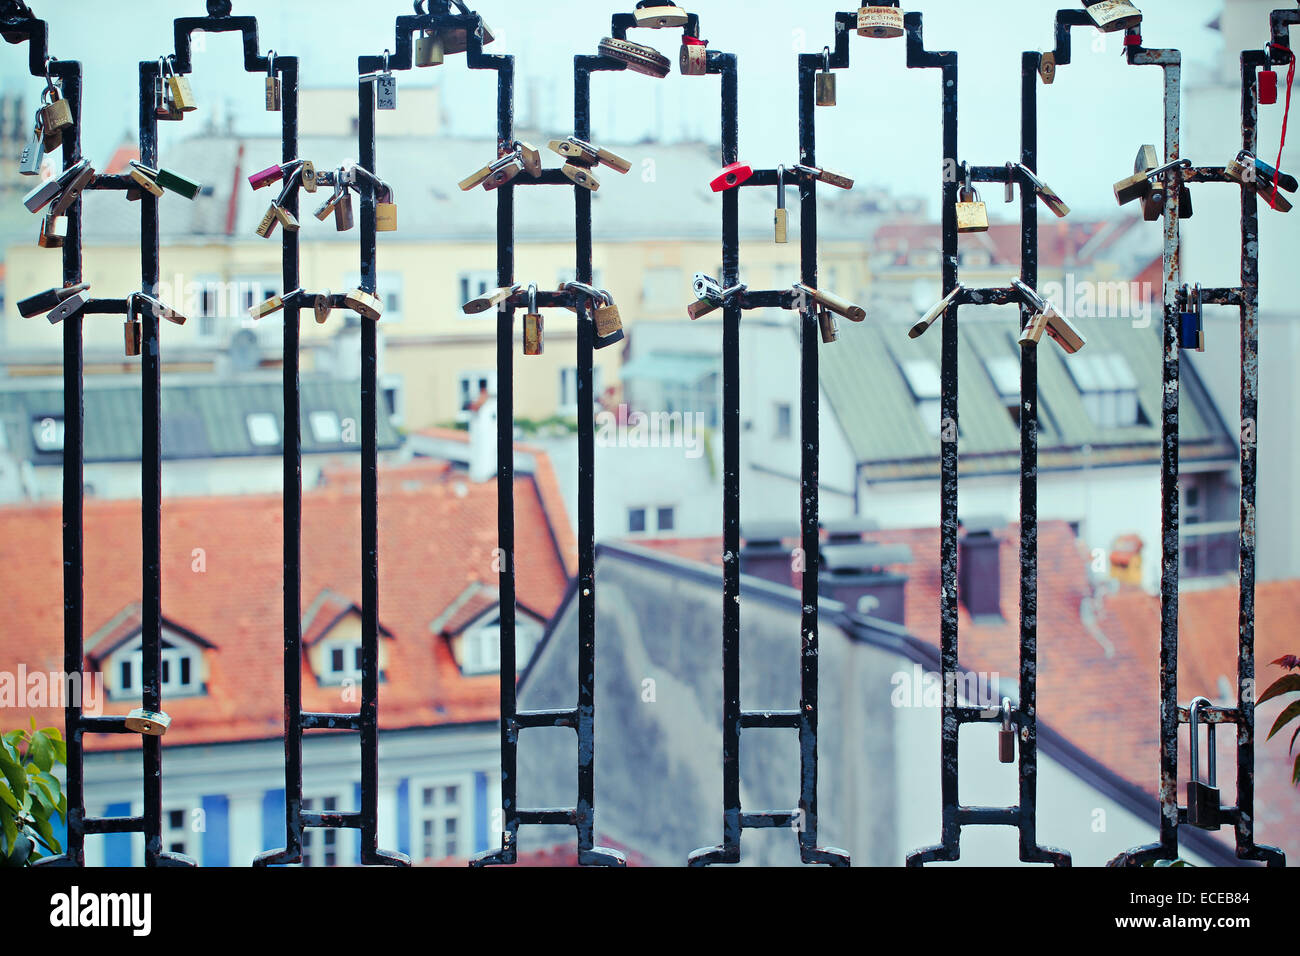 City skyline seen through railings, Zagreb, Croatia - Stock Image